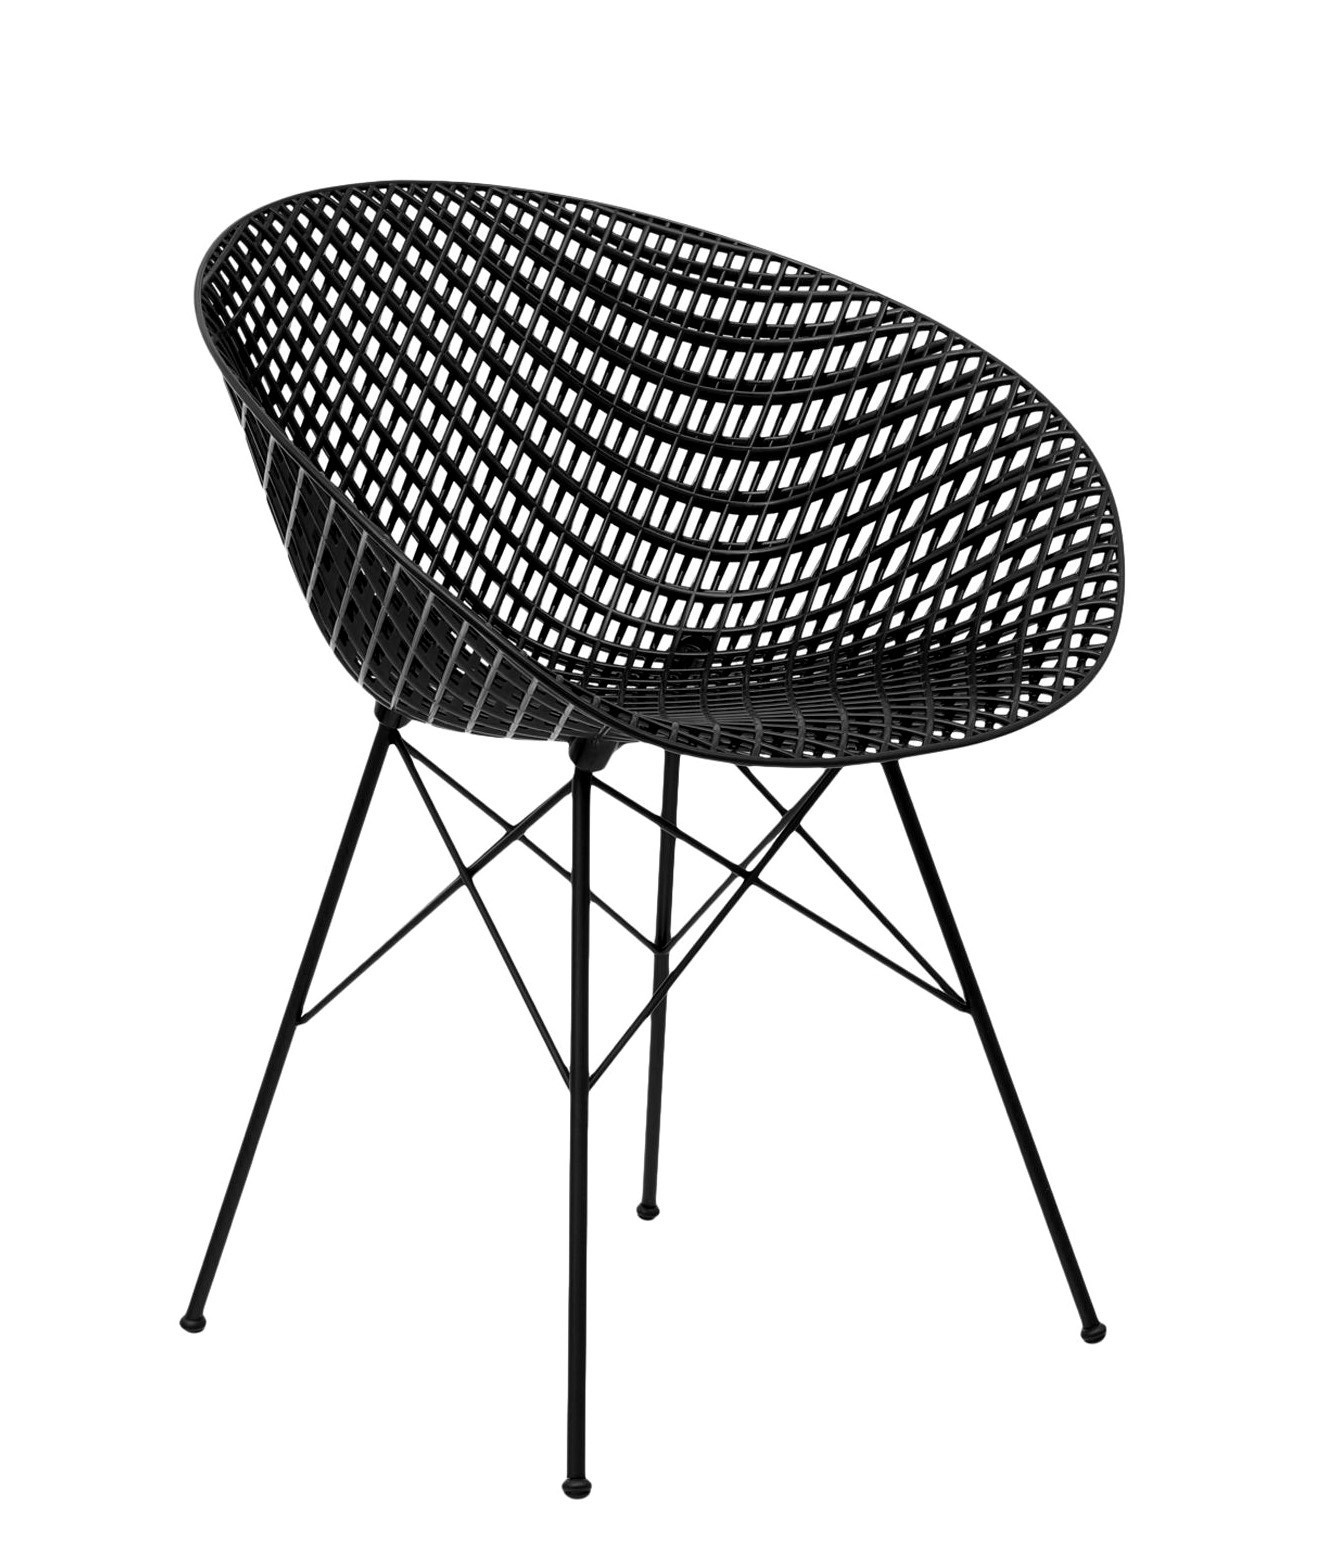 Kartell Smatrik Outdoor Chair (Priced Each, Sold in Sets of 2)